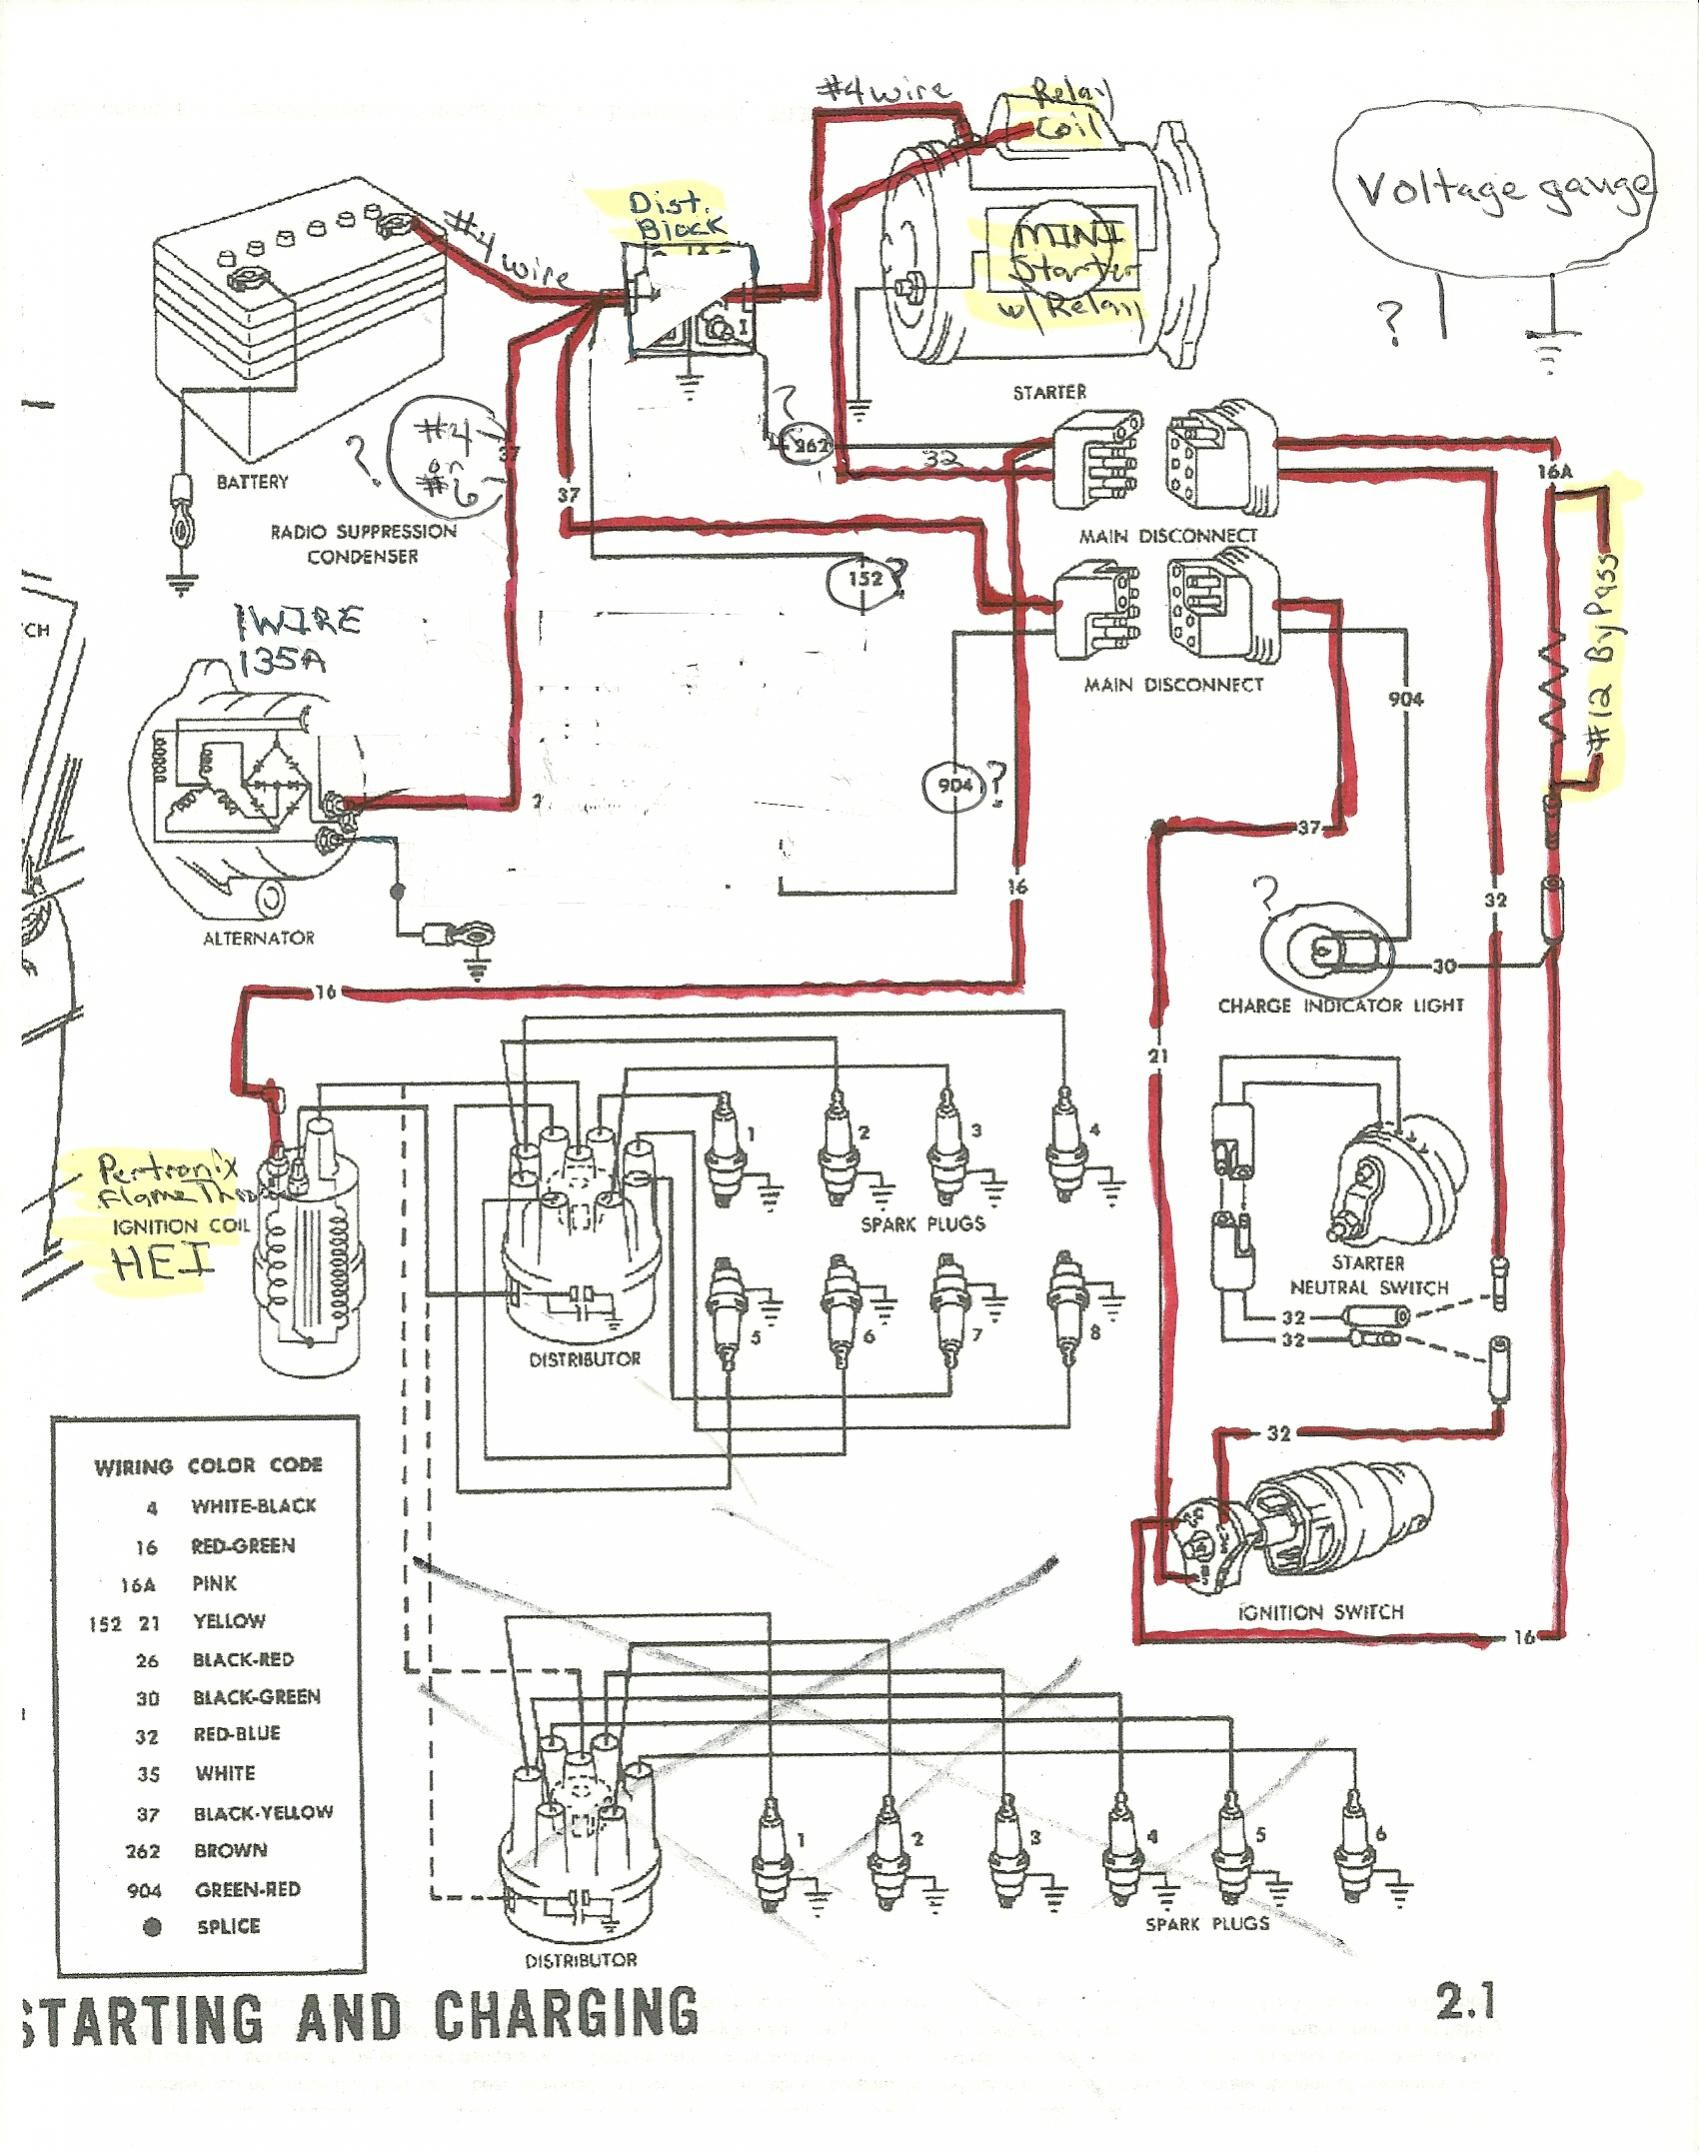 Gretsch Original Wiring Harness 1965 Wiring Diagram